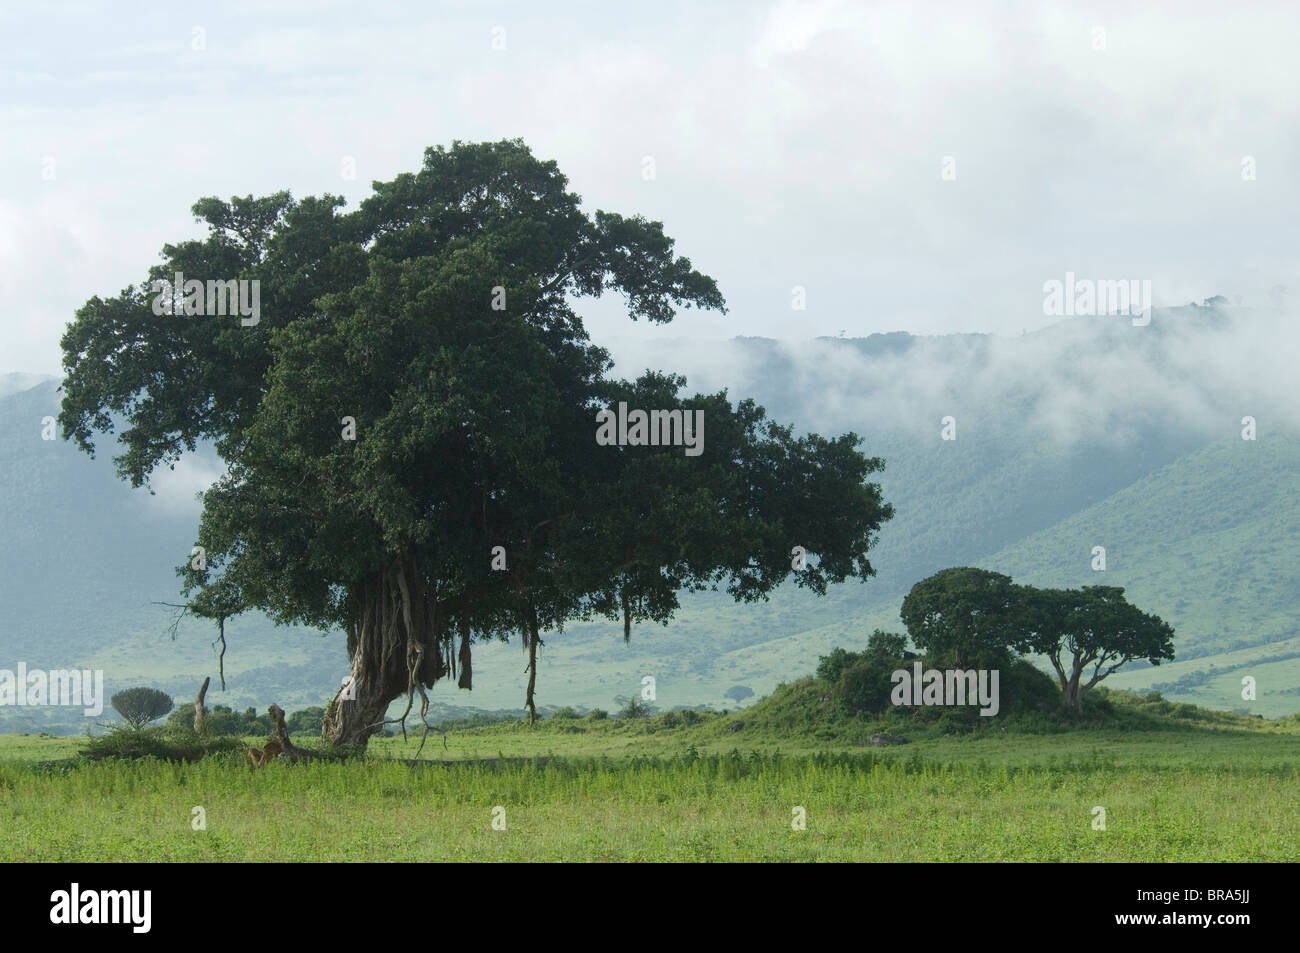 SCENIC LANDSCAPE TREES MISTY CLOUDS NGORONGORO CRATER TANZANIA AFRICA - Stock Image